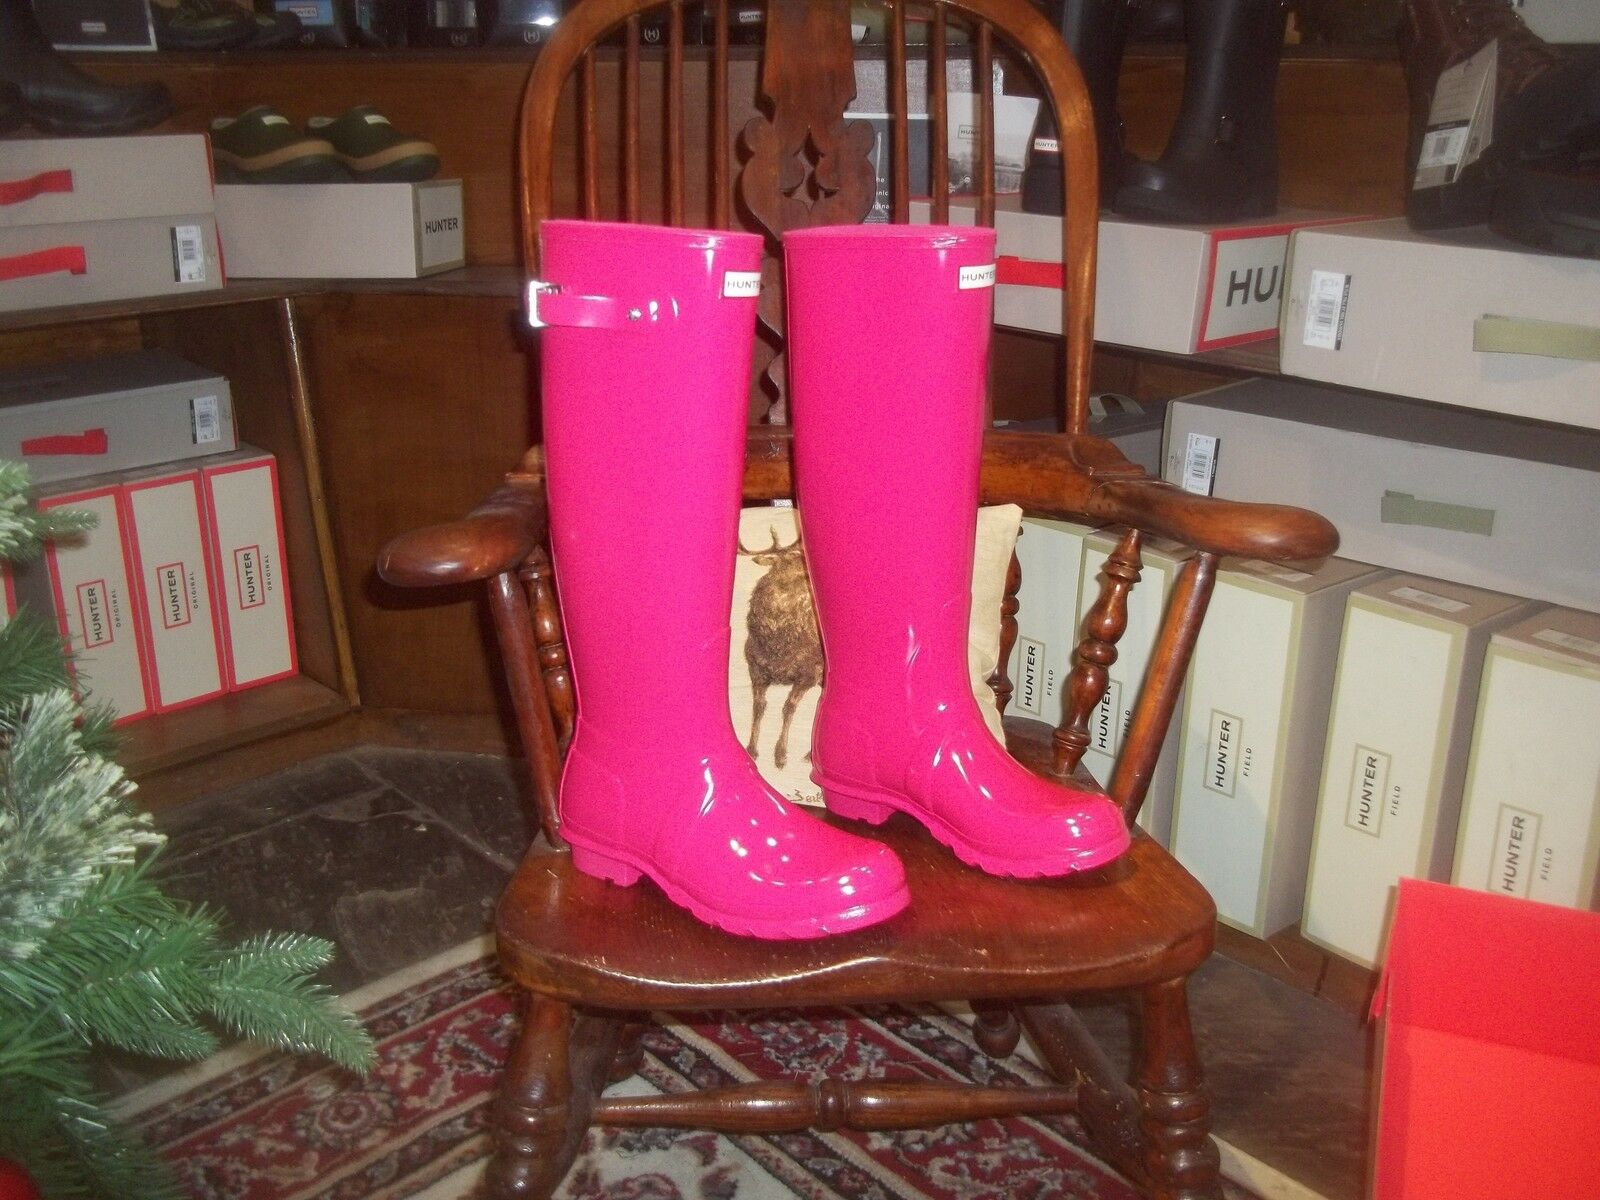 GLOSS HUNTER WELLIES WELLINGTONS  IN HALIFAX SIZE 4 BRIGHT PINK  TALL Women's